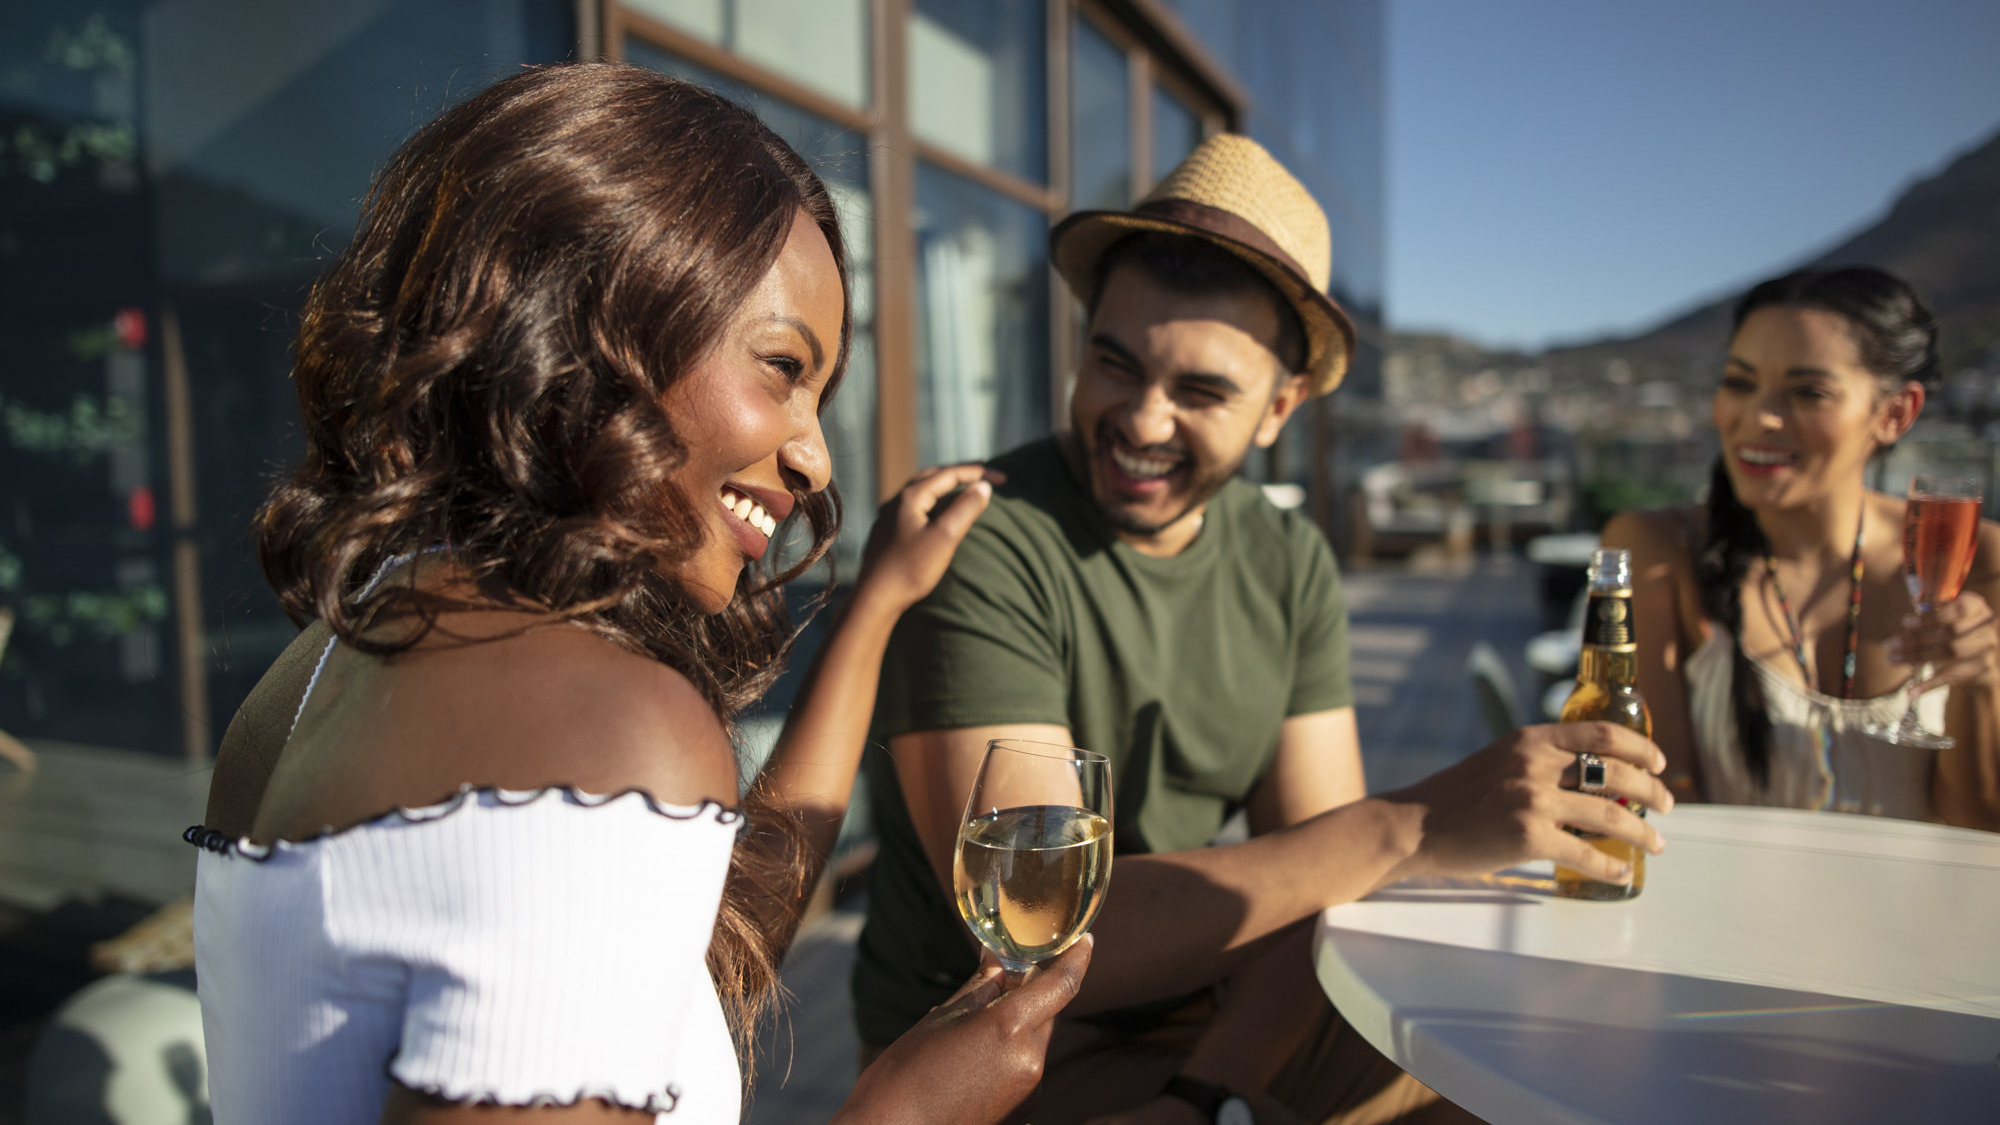 Image of friends having sundowners at the SunSquare Cape Town City Bowl Hotel Rooftop Bar for Tsogo Sun's Image Library & Content Library by Michelle Wastie Photography